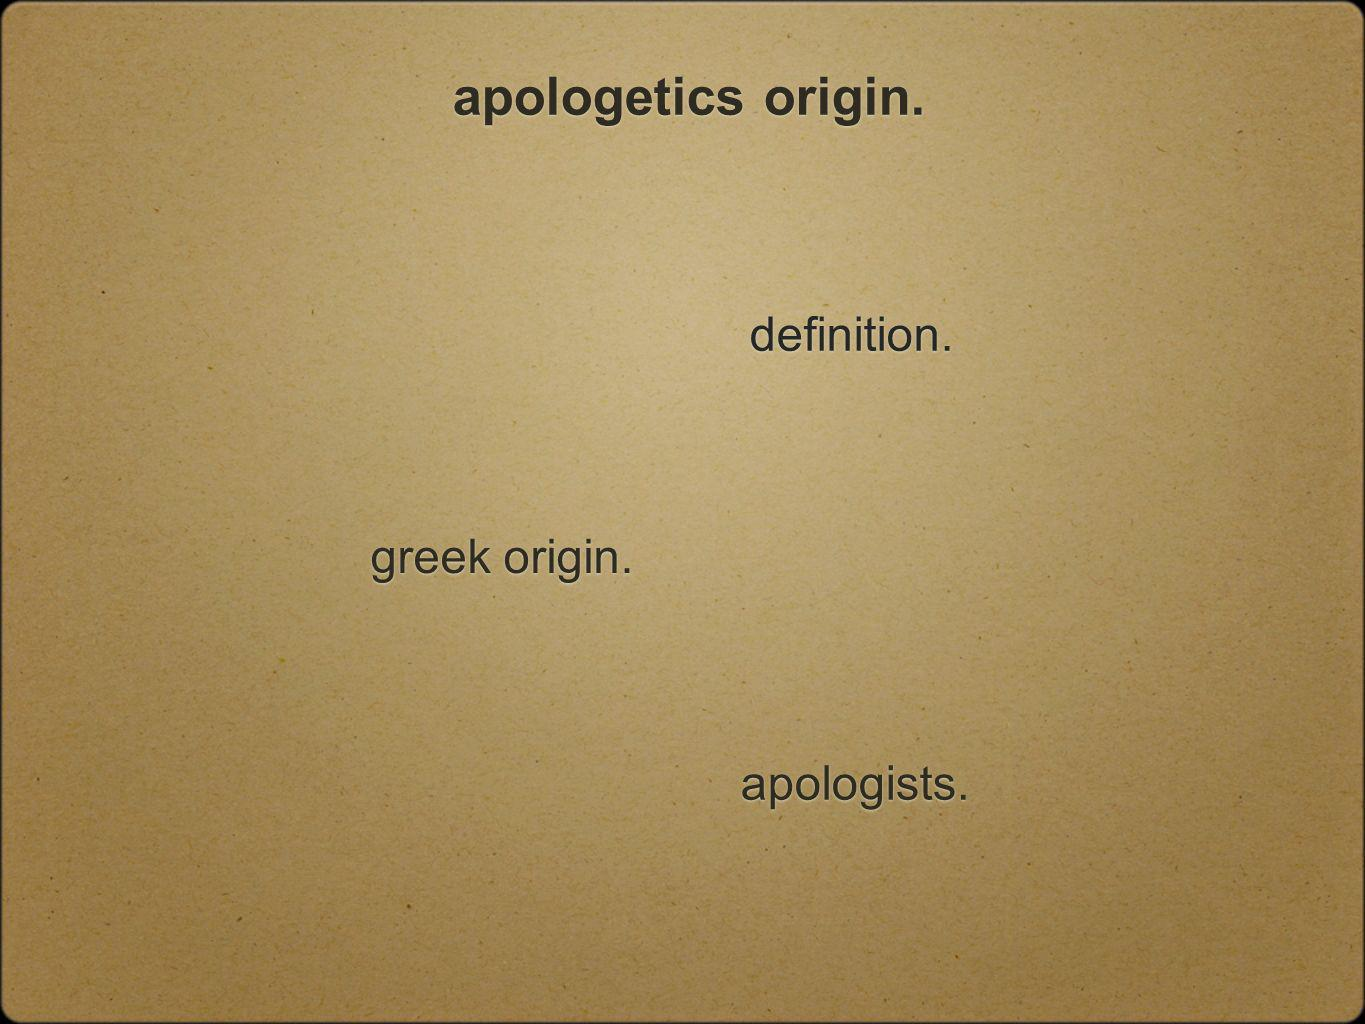 apologetics origin. definition. greek origin. apologists.